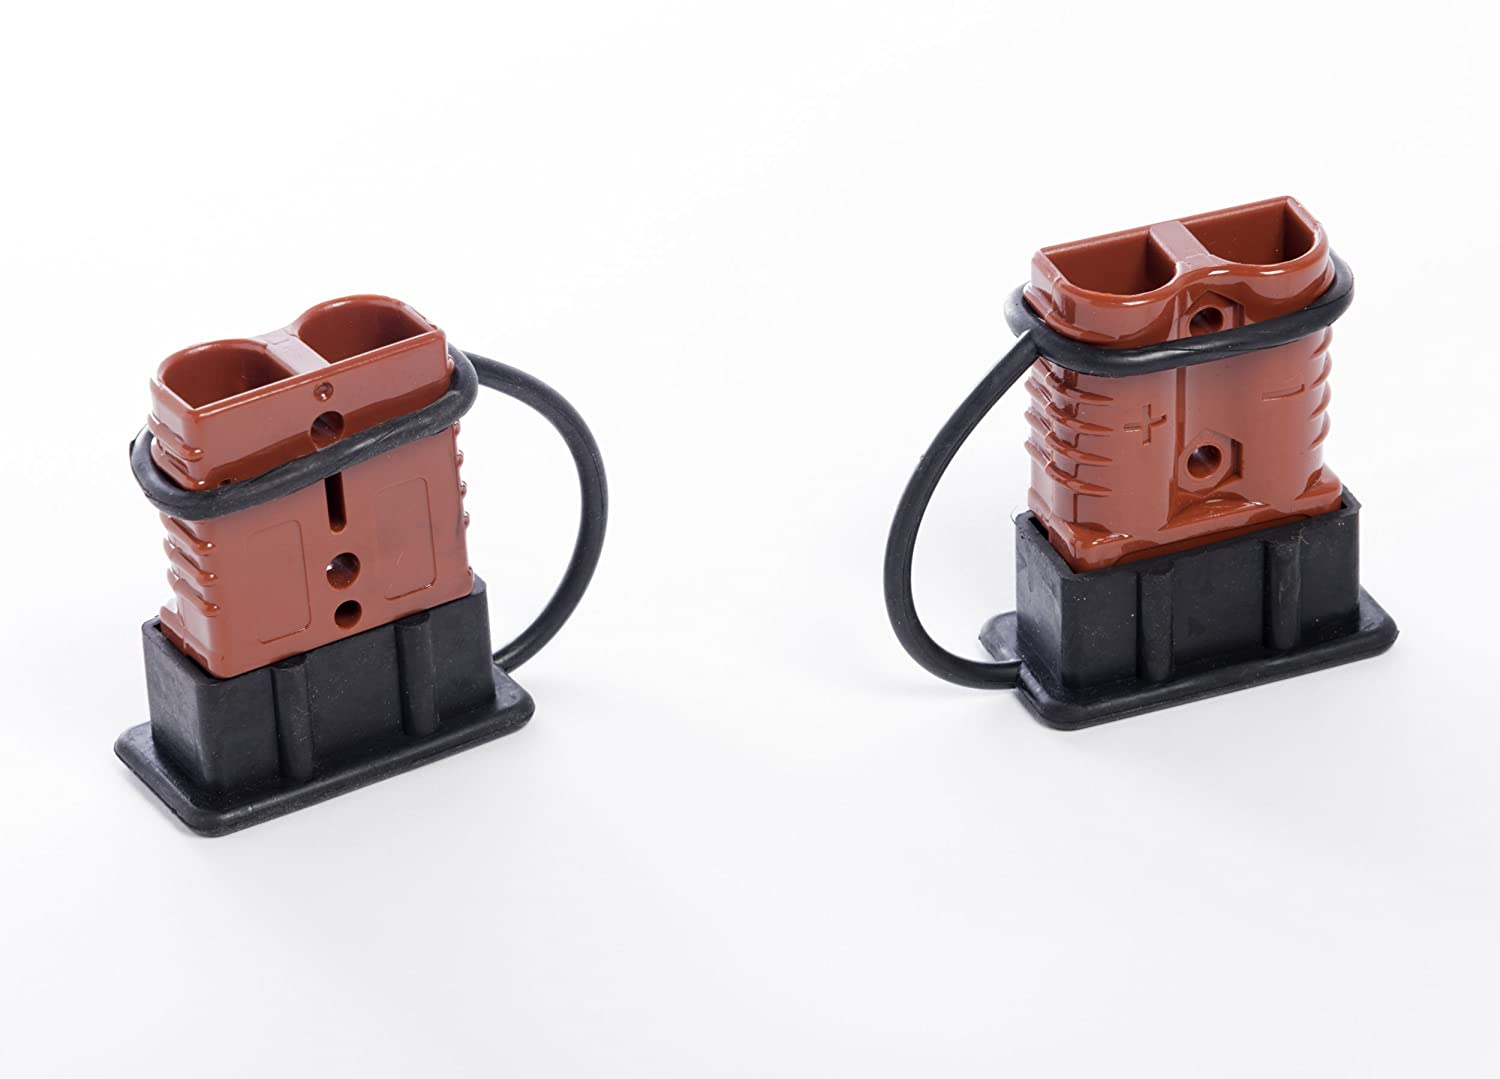 Easy To Install Perfect For Winch Trailers Weather-proof Rubber Caps Included Alfa Wheels Premium 2-4 AWG Battery Quick Connect /& Disconnect Plug Set With 350 Amps Max Capacity